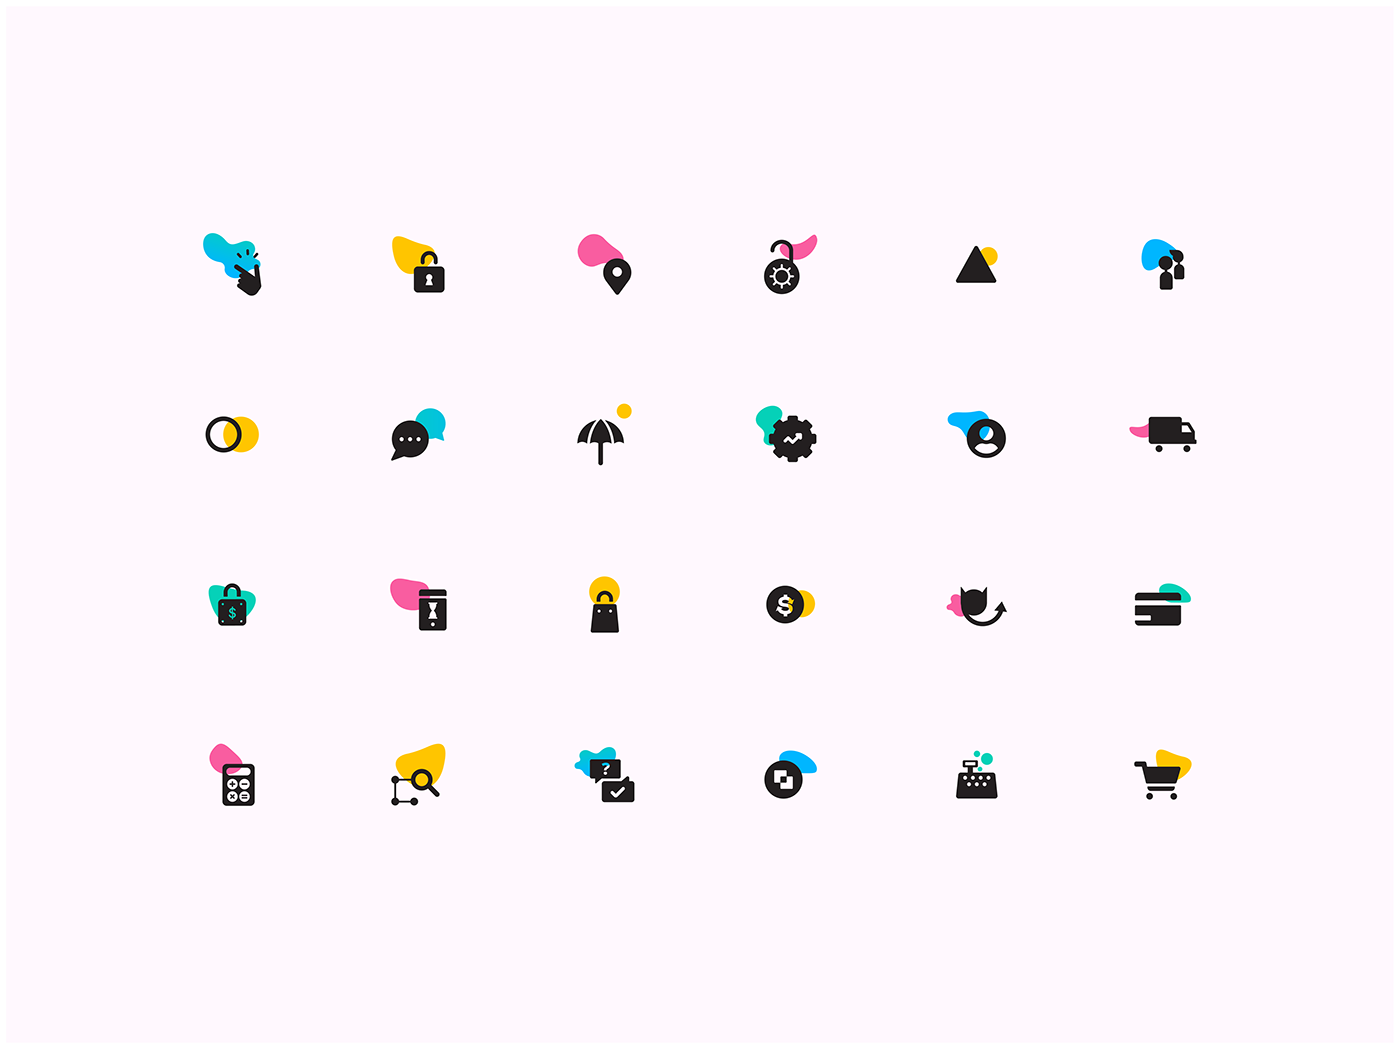 An icon set for an online transaction mobile app.